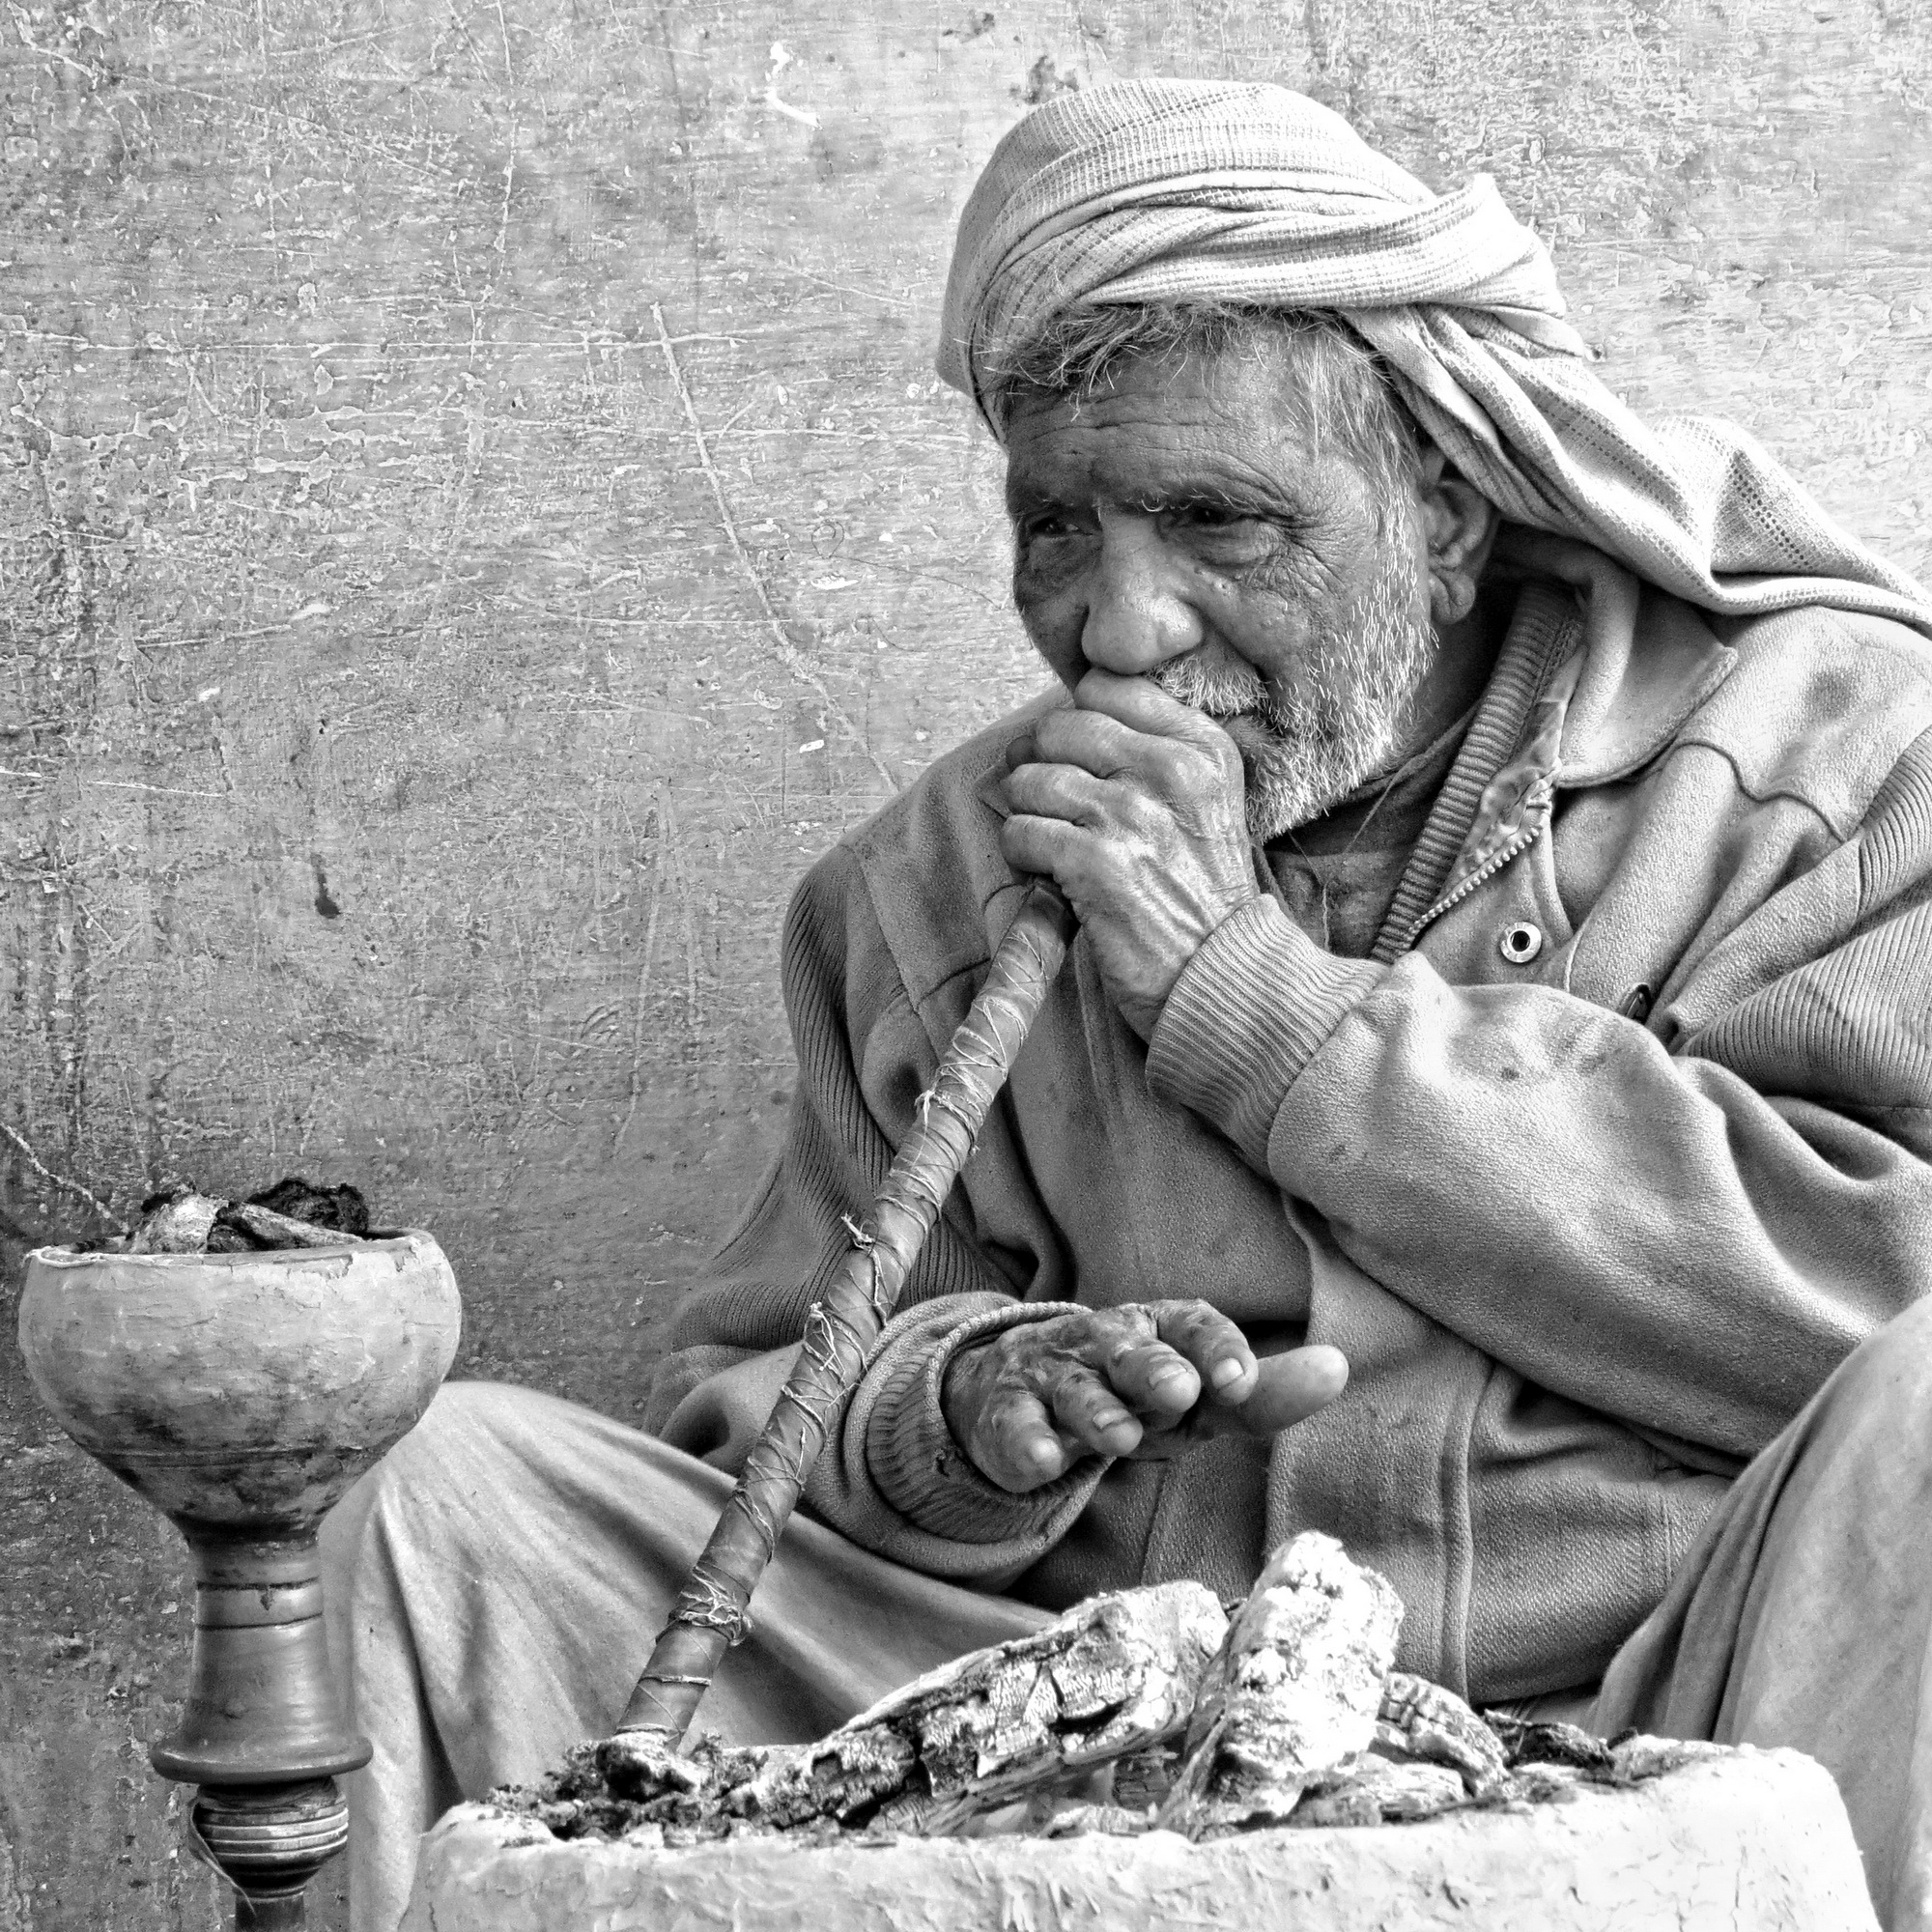 On the cold winter morning the house elder enjoys his hookah while warming his hands on the hot coals